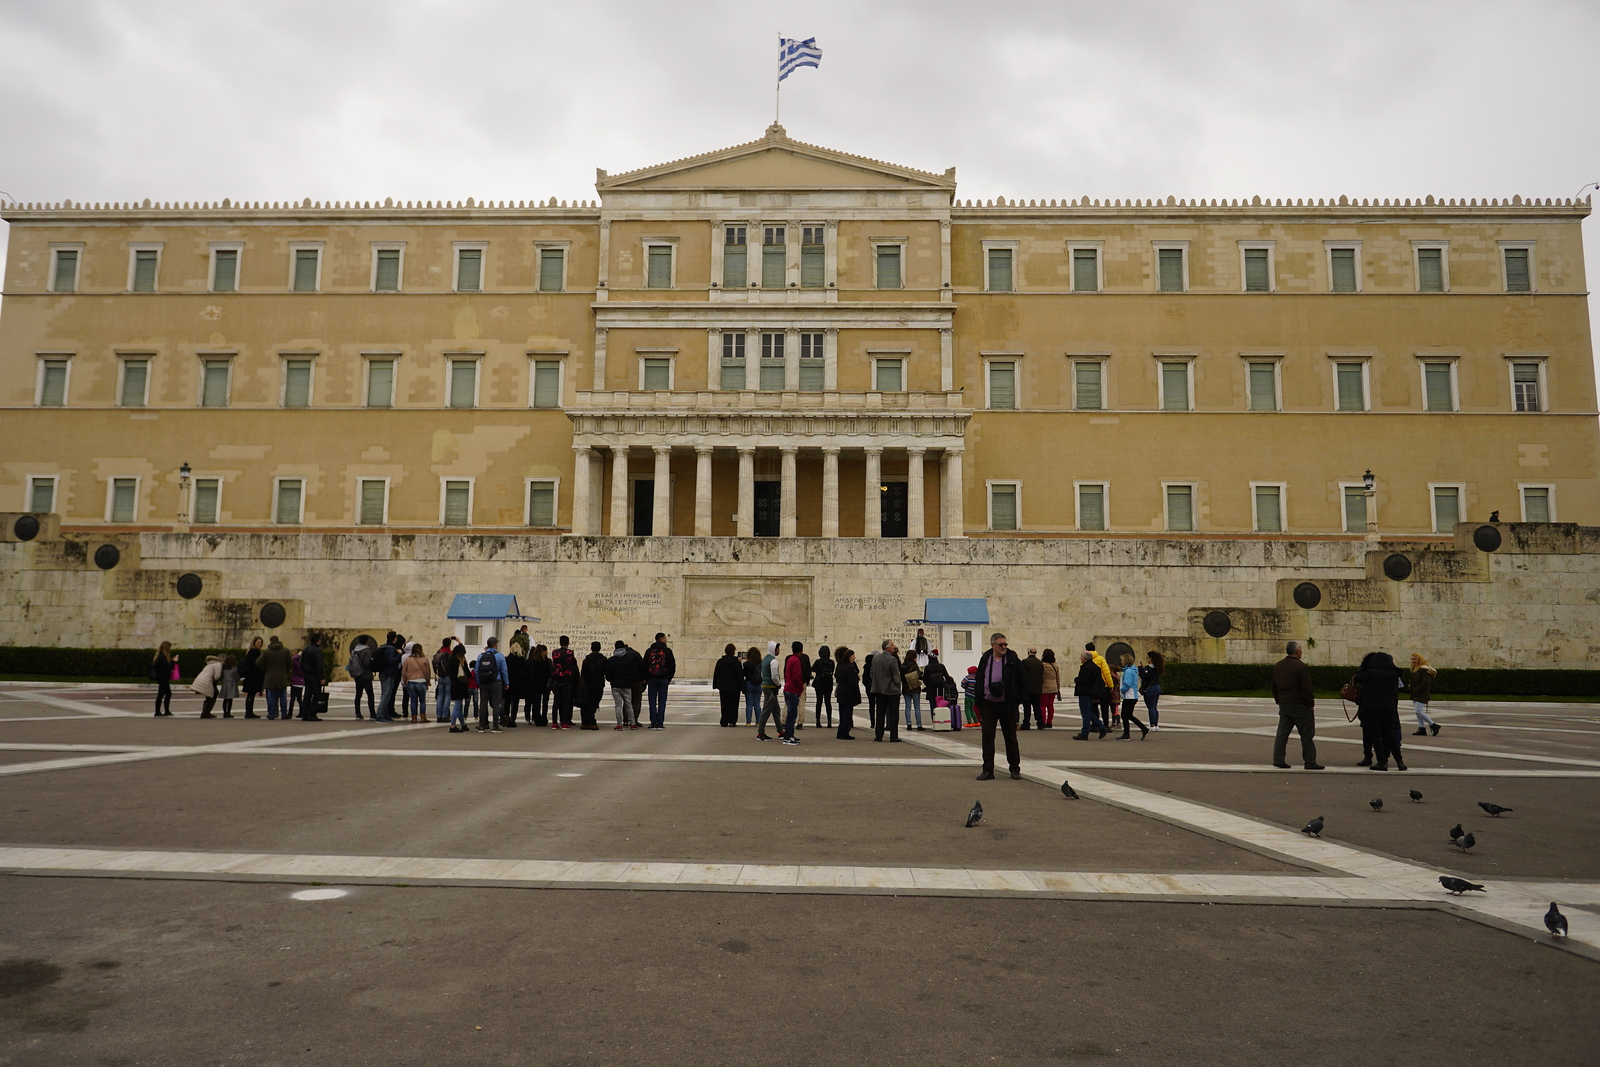 007 - Athens - Parliament and Tomb of the Unknown Soldier